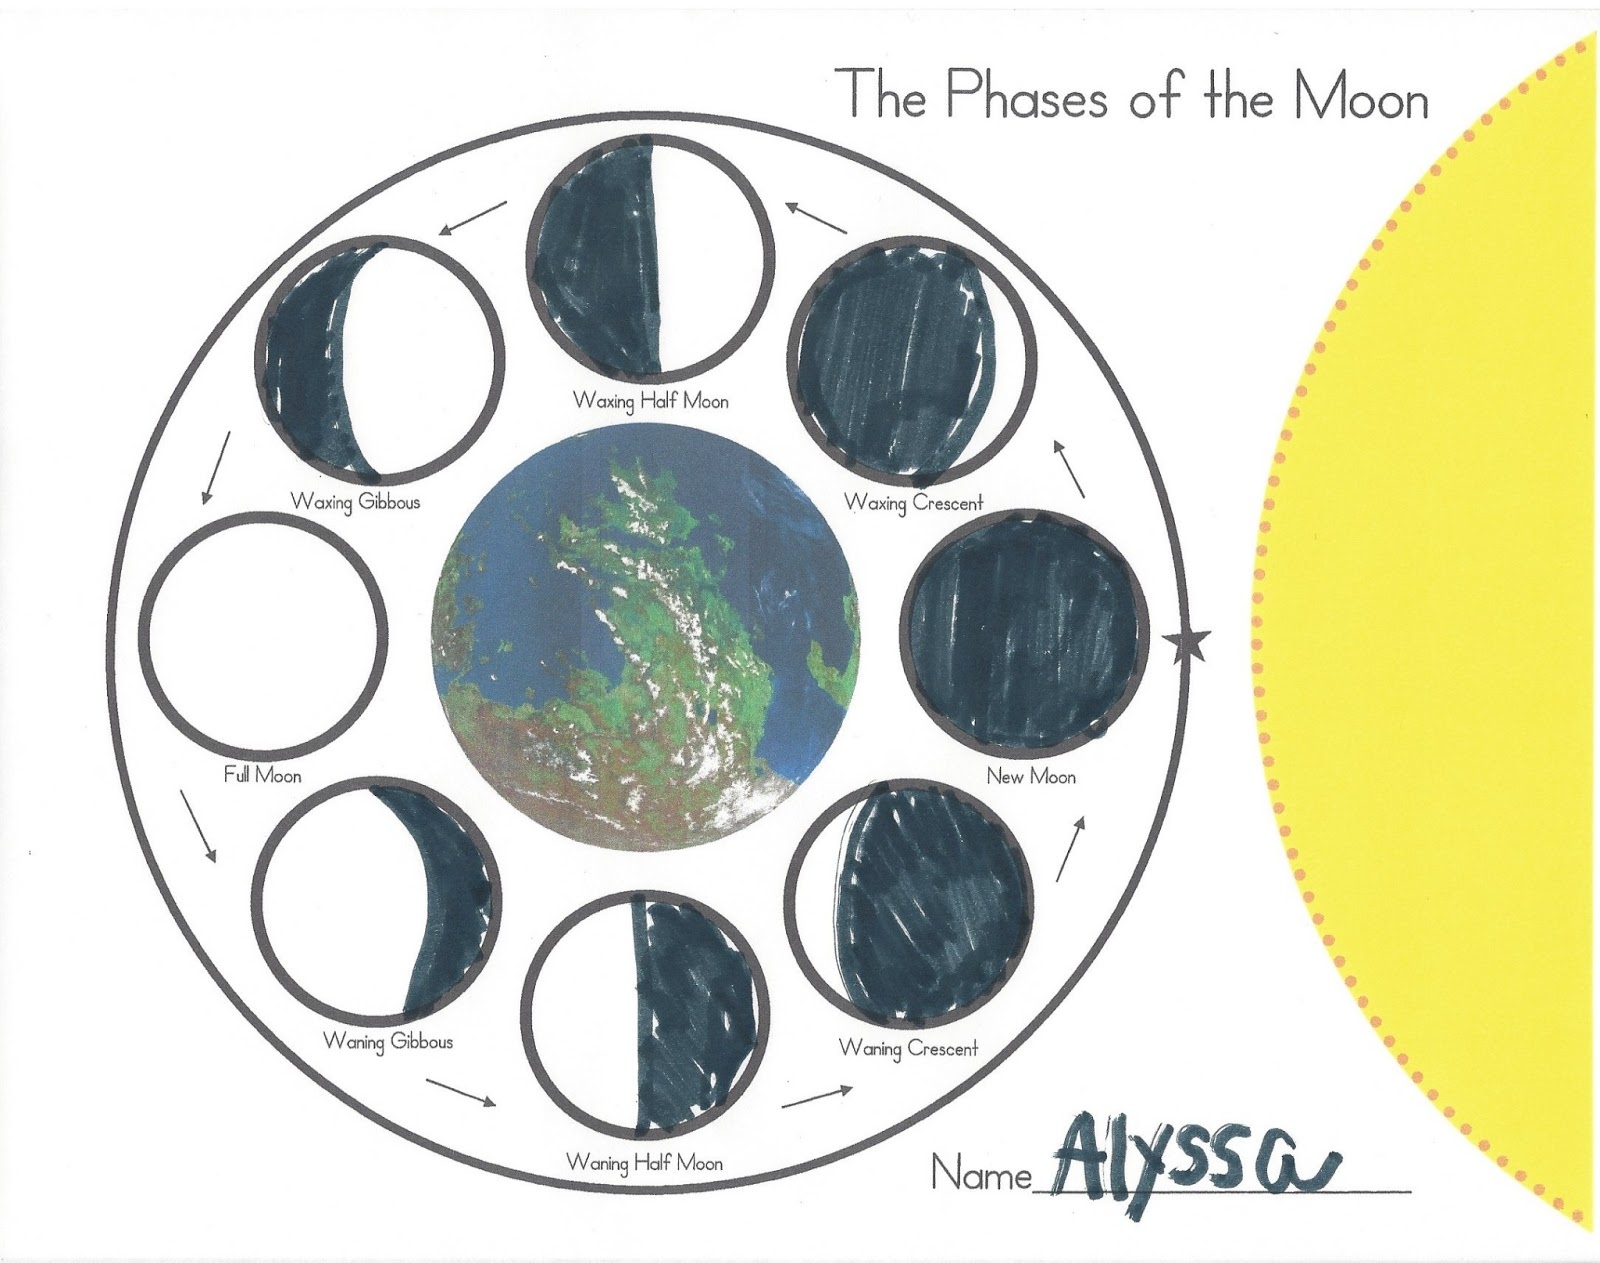 essay on the moon phases Phases of the moon animated phases of the moon by observing the moon over a period of several weeks, one will notice that the moon rises and sets at.